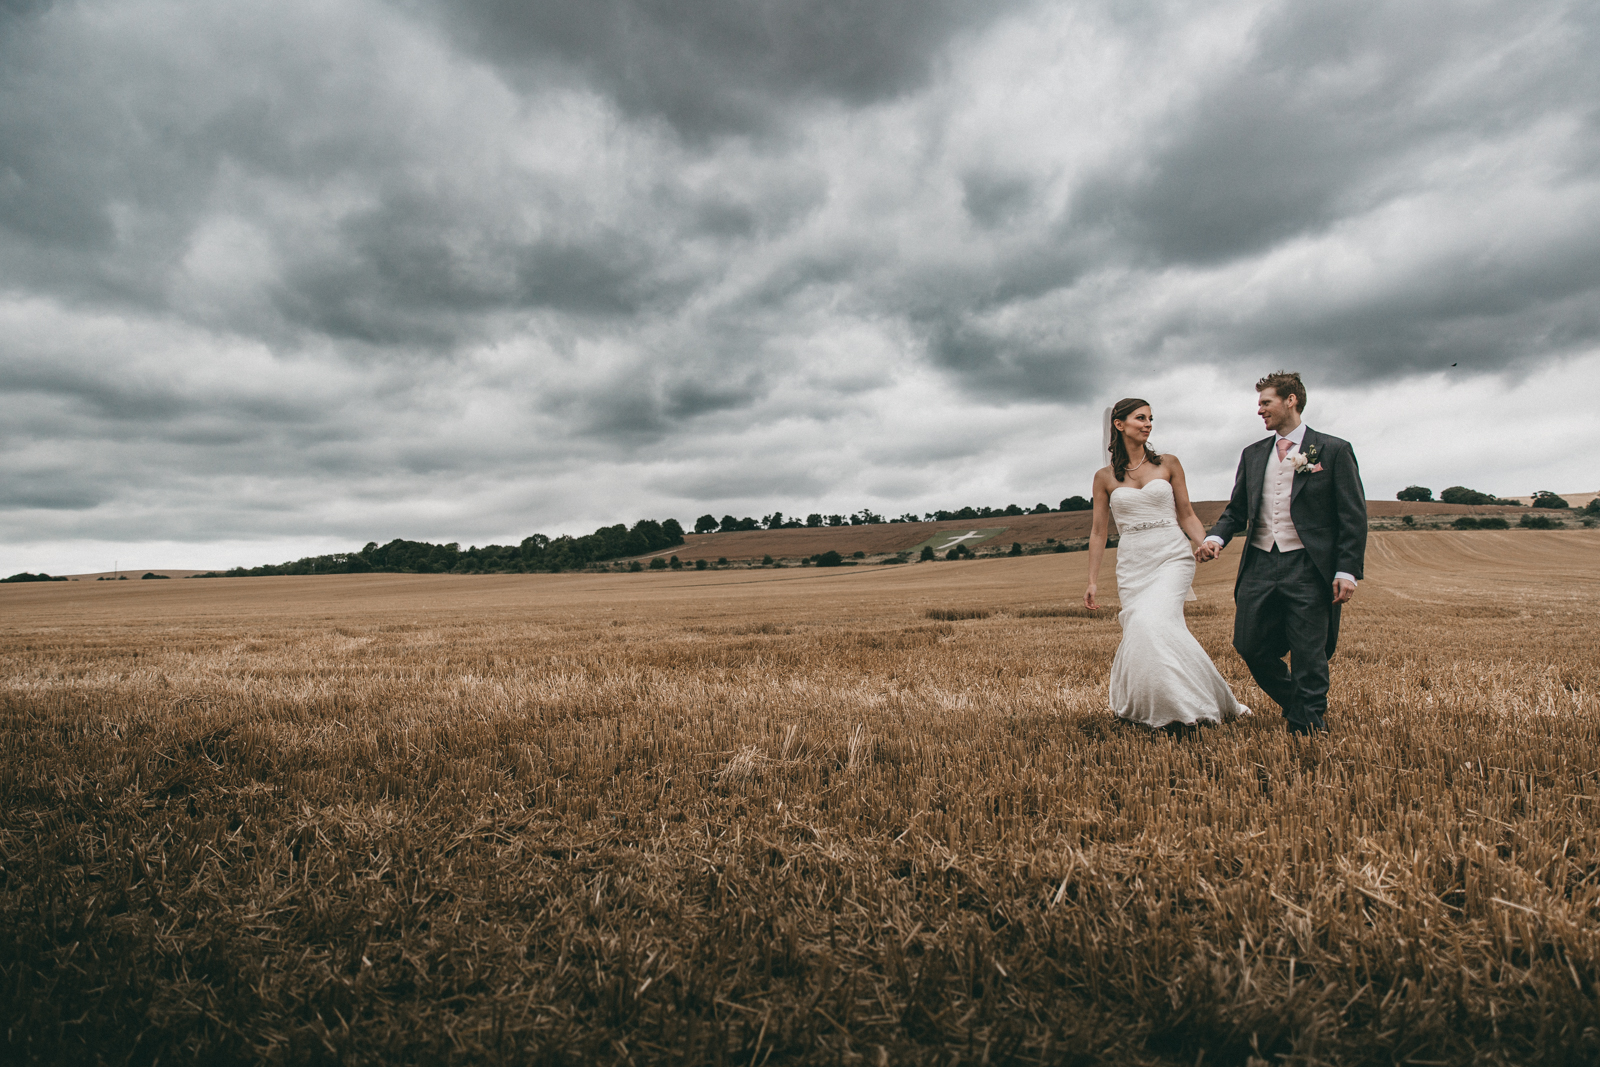 Chris Bradshaw Wedding Photography - Simon & Amanda Wedding Photos-71